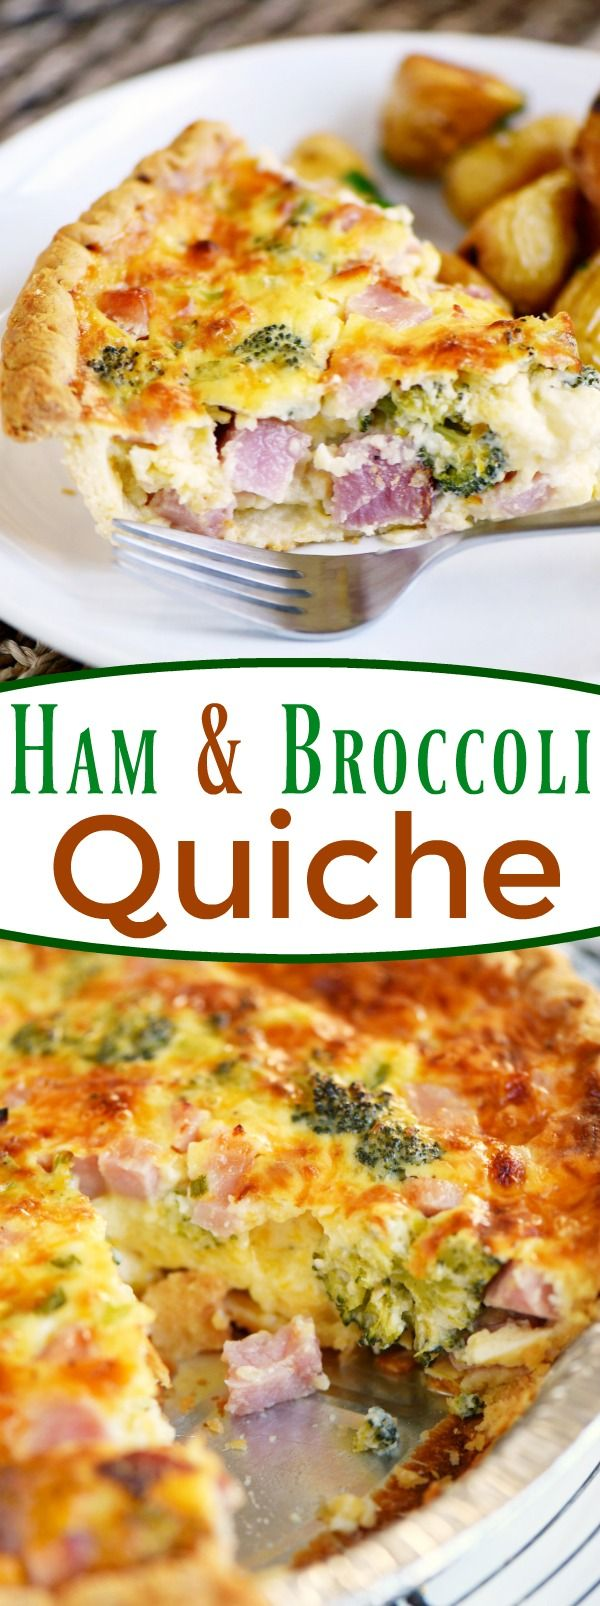 This easy Ham and Broccoli Quiche will be the star of the show no matter when you serve it! Great for breakfast, brunch and dinner!